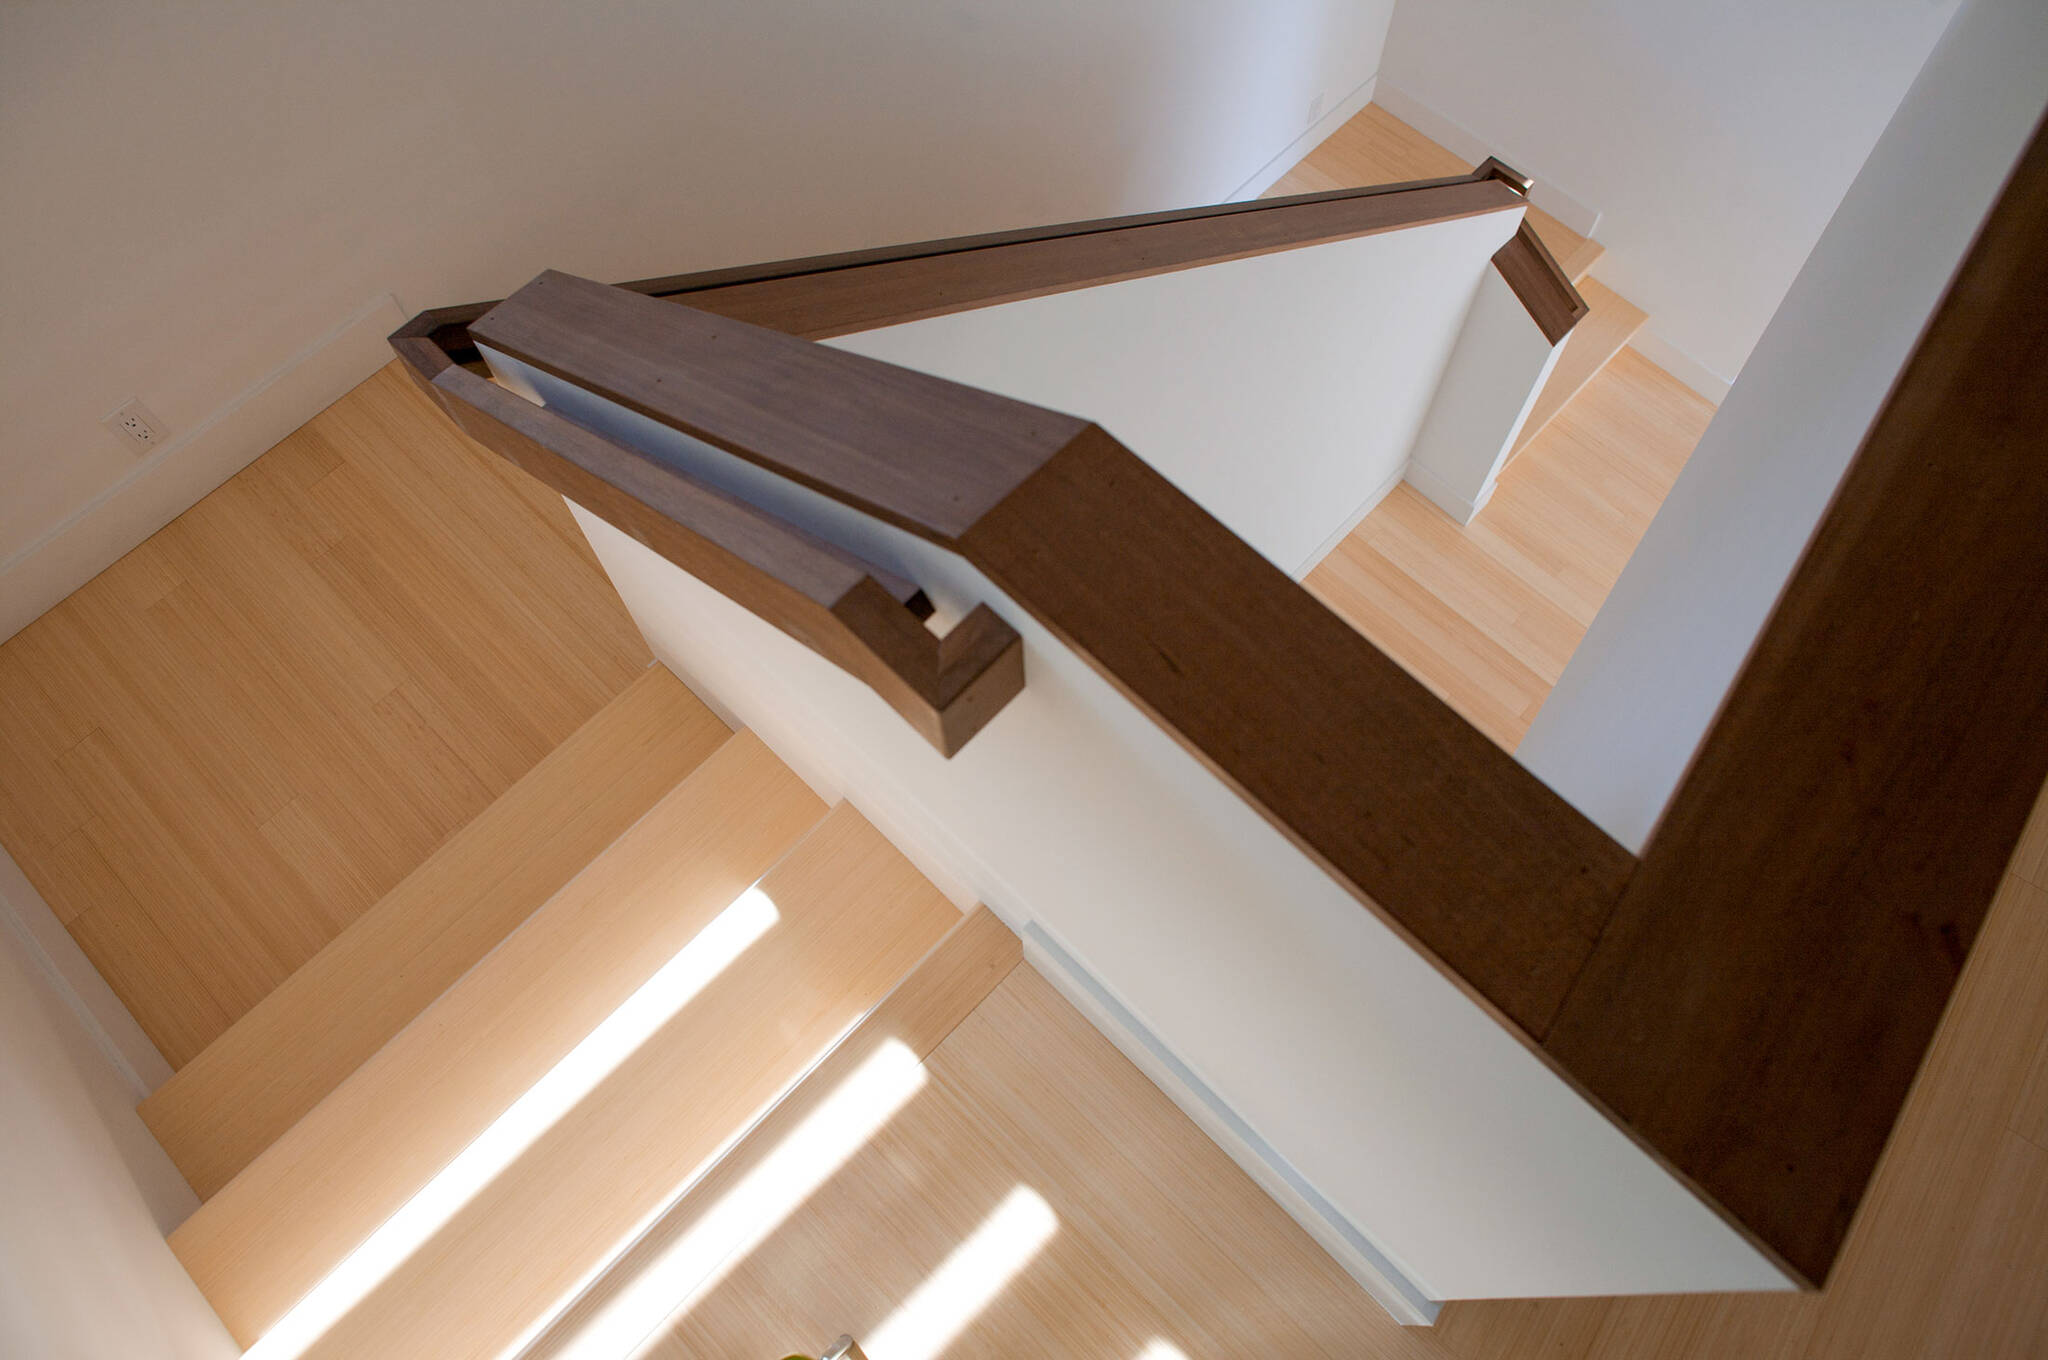 Star railing detail of the sustainable lake house project in Omena, Michigan designed by the architecture studio Danny Forster & Architecture